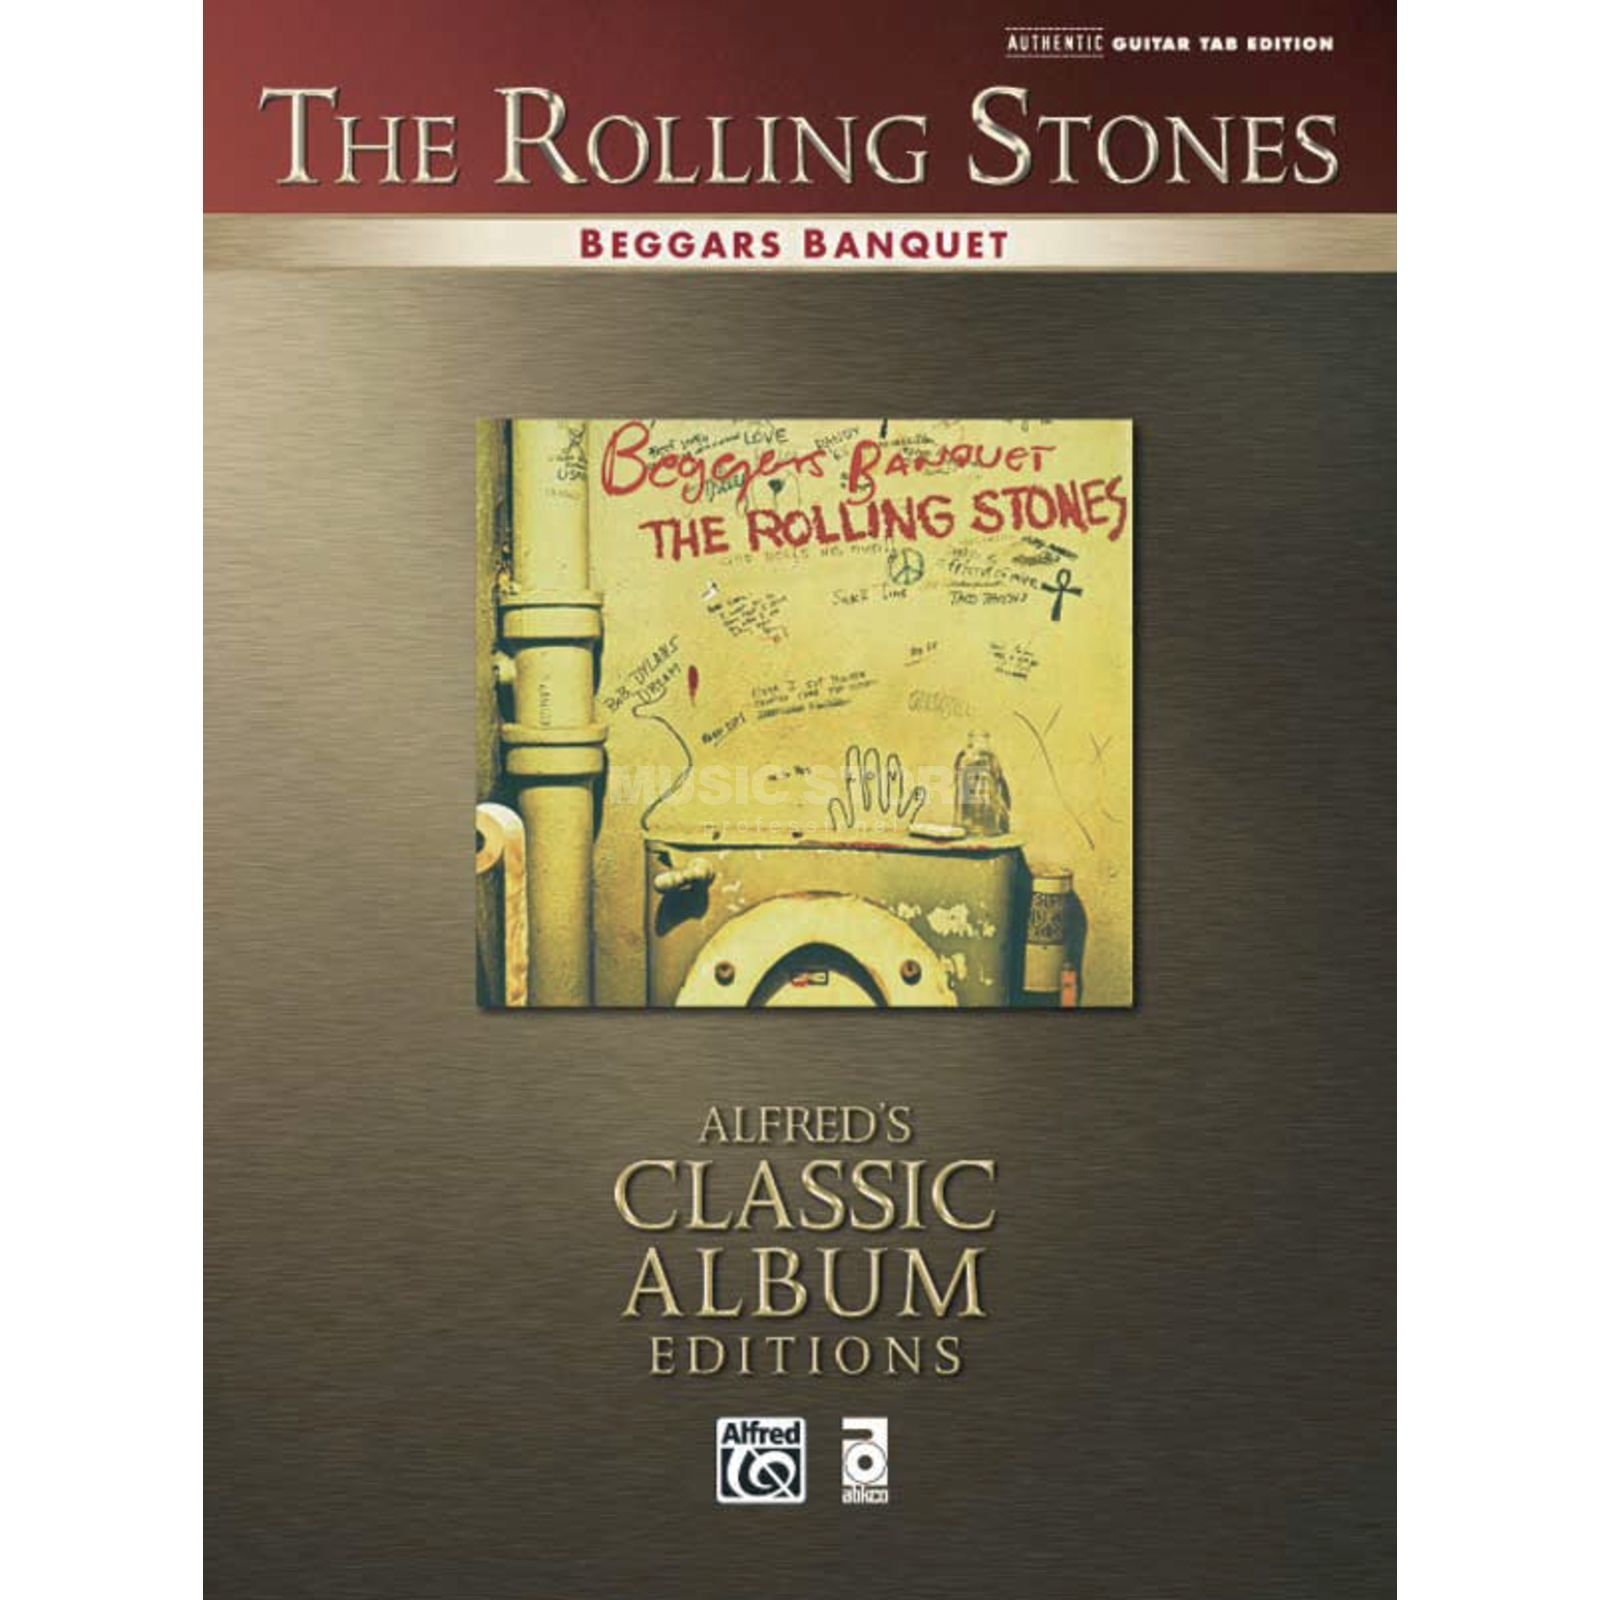 Alfred Music The Rolling Stones: Beggars Banquet Produktbild